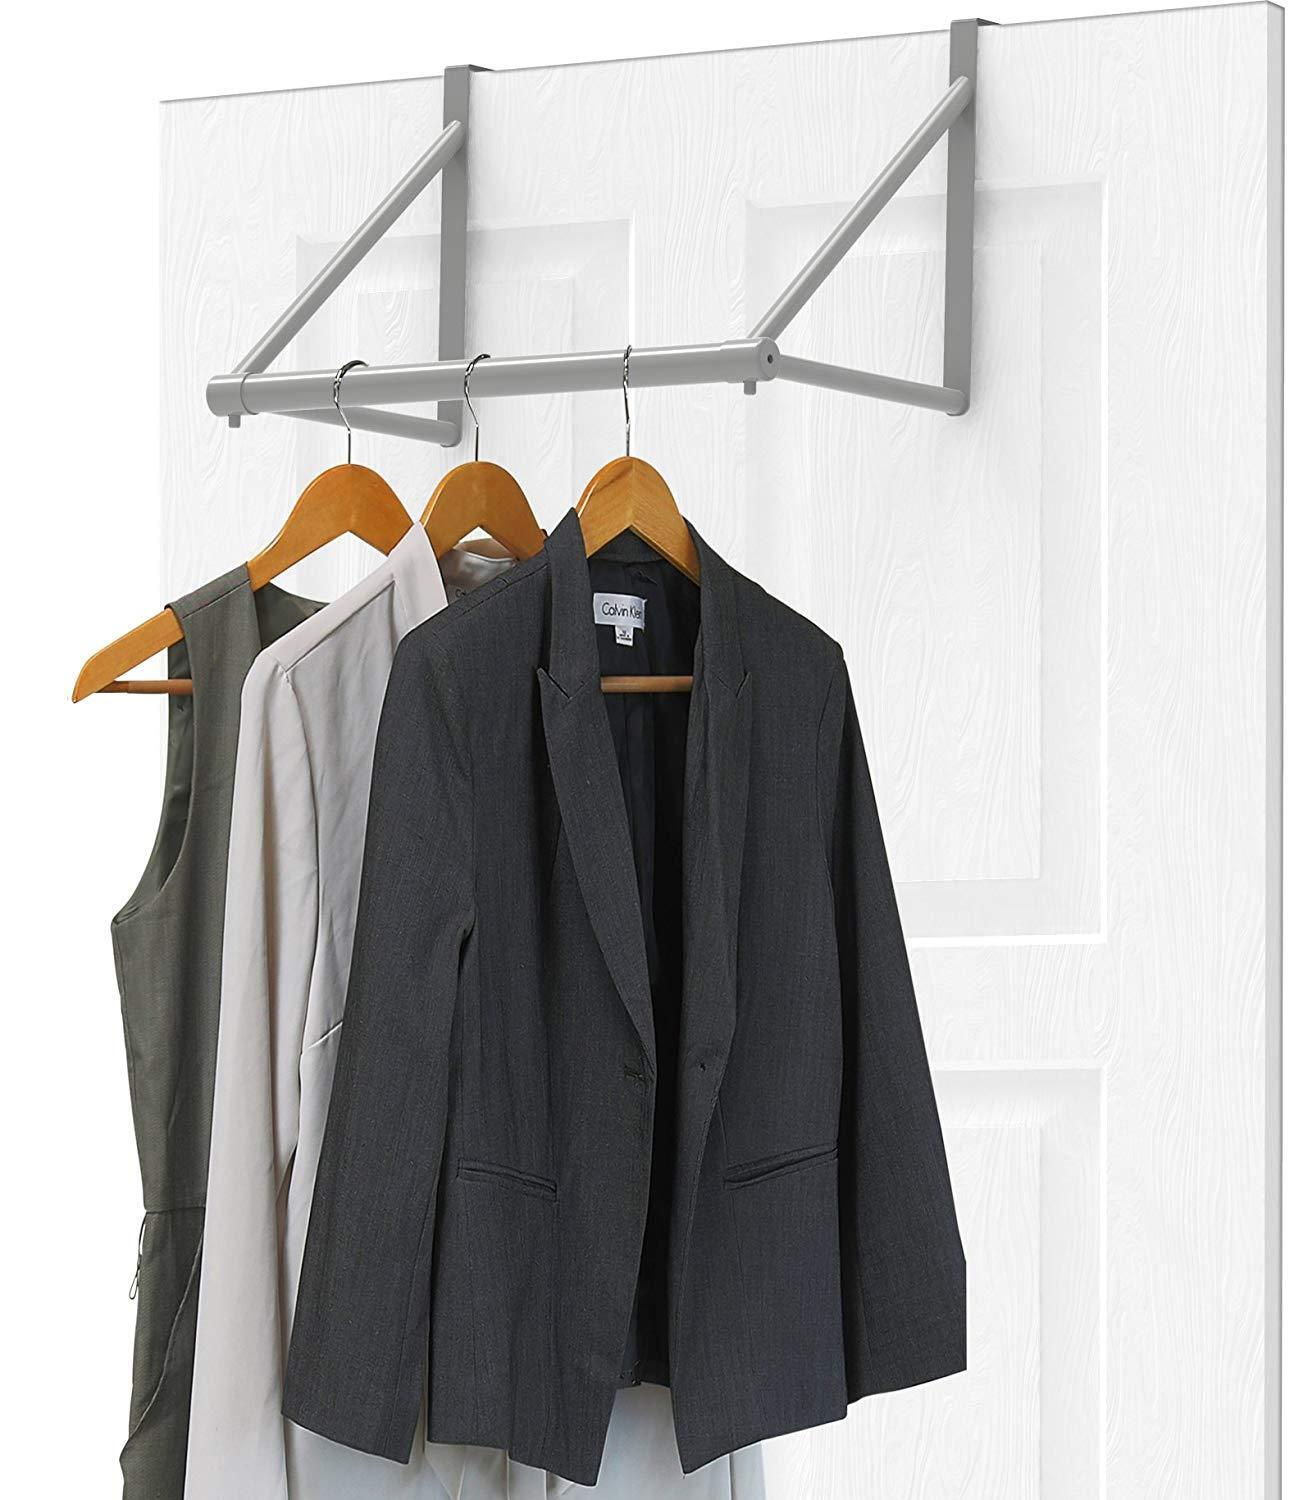 Over The Door Clothes Hanging Bar Rack Valet Hanger Space Sa